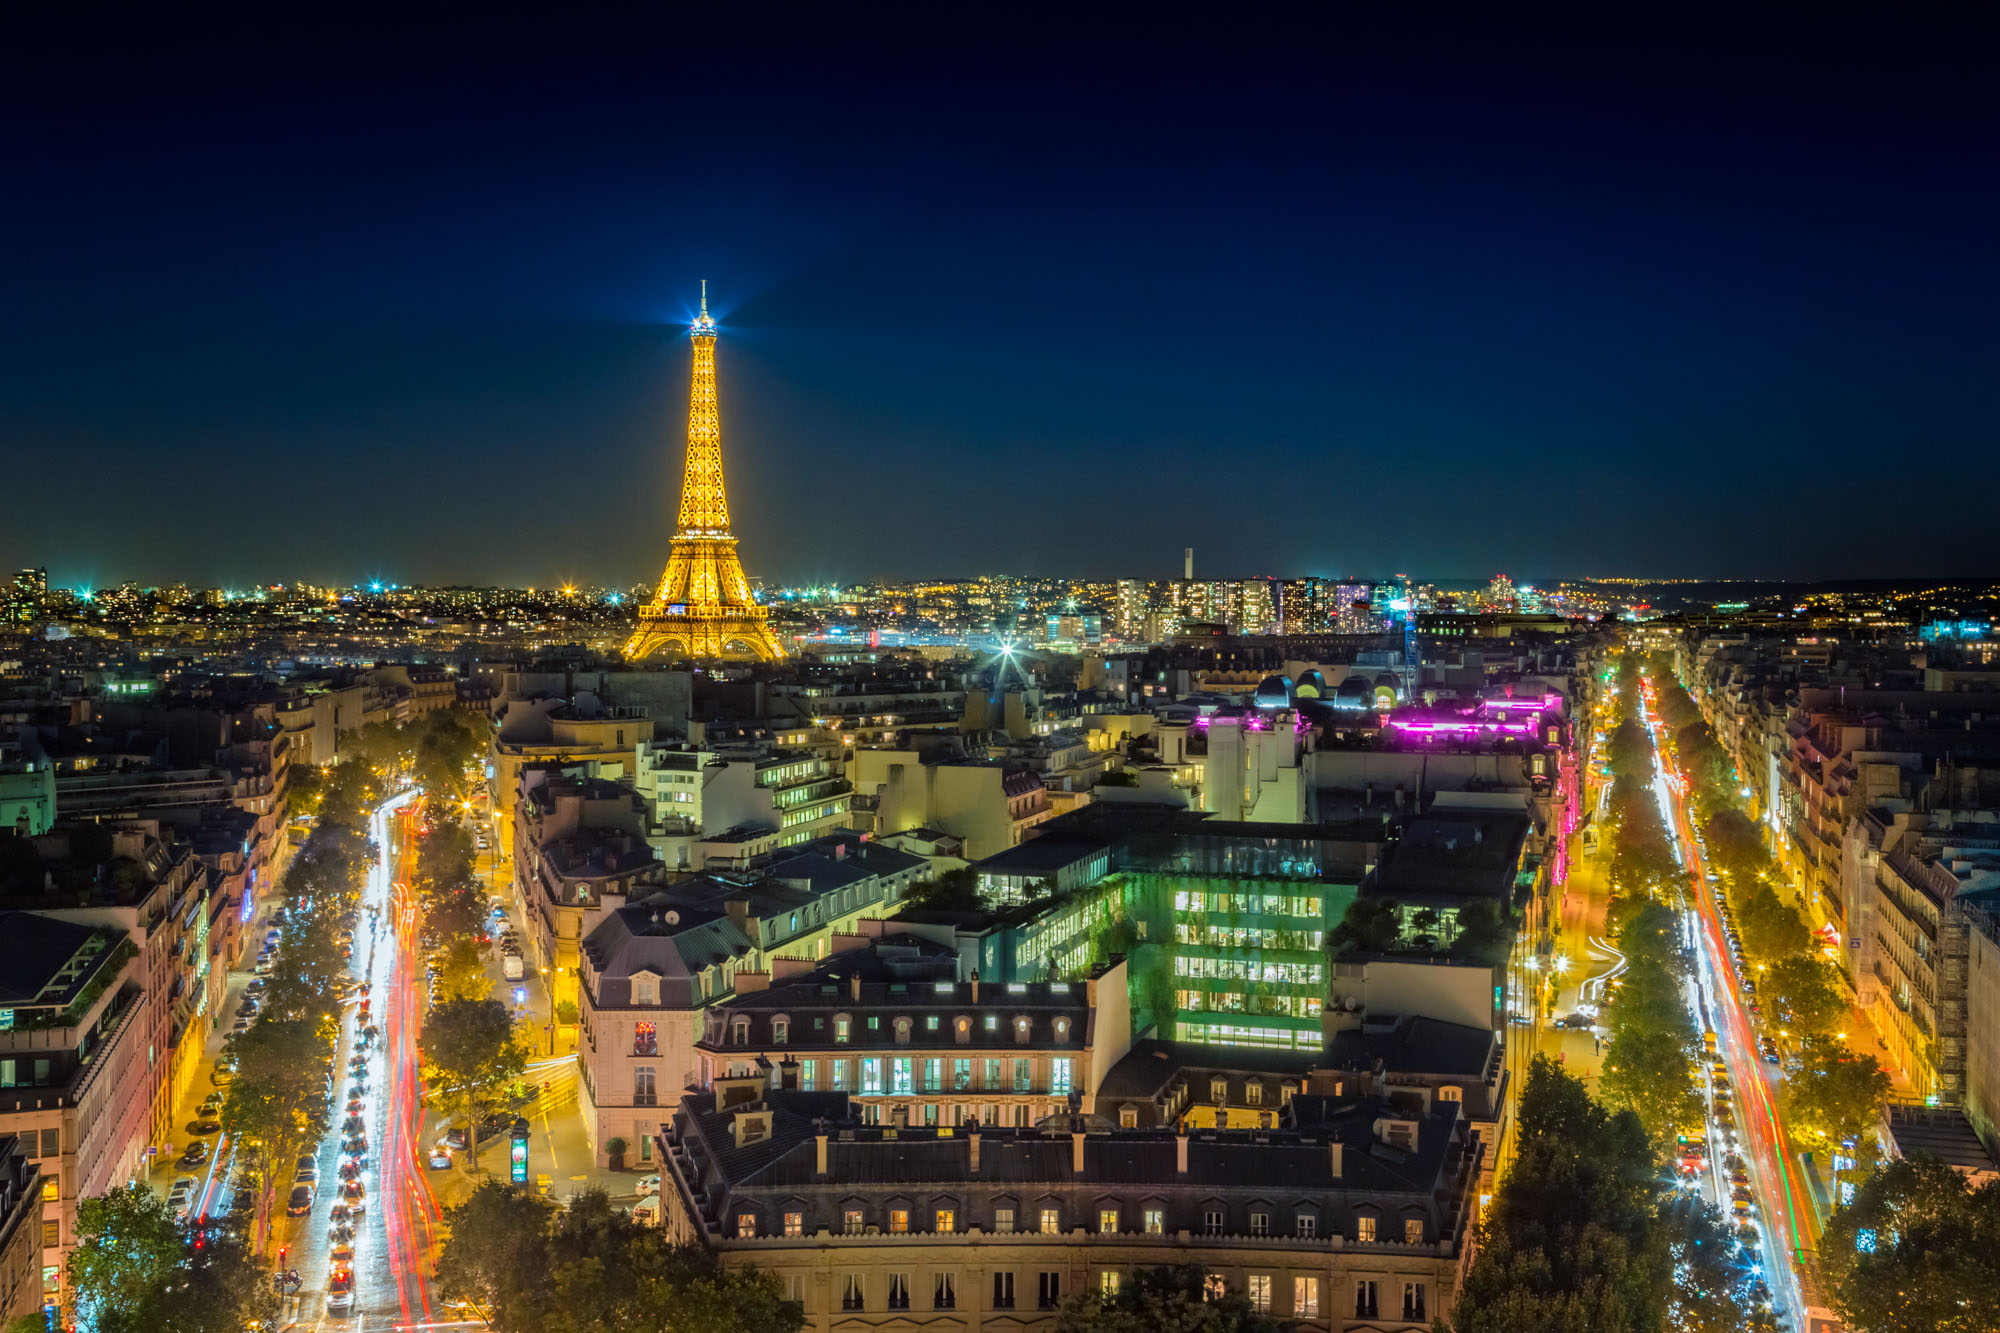 long exposure night photography of the Boulevards in Paris and Eiffel Tower with light trails at sunset viewed from above